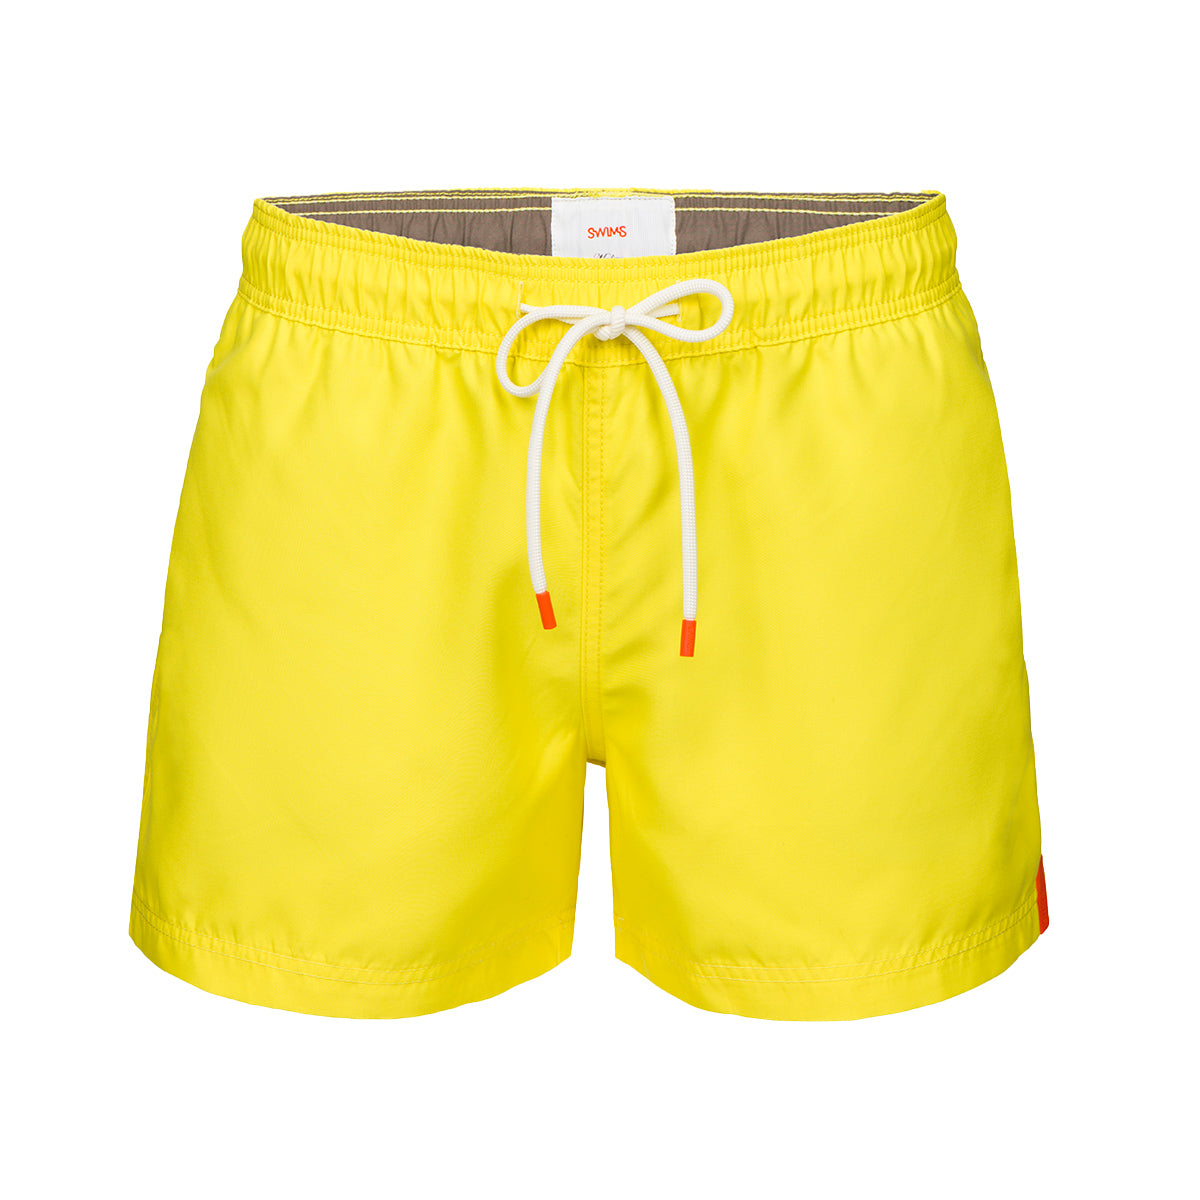 Gavitella Solid Bathing Shorts - background::white,variant::yellow